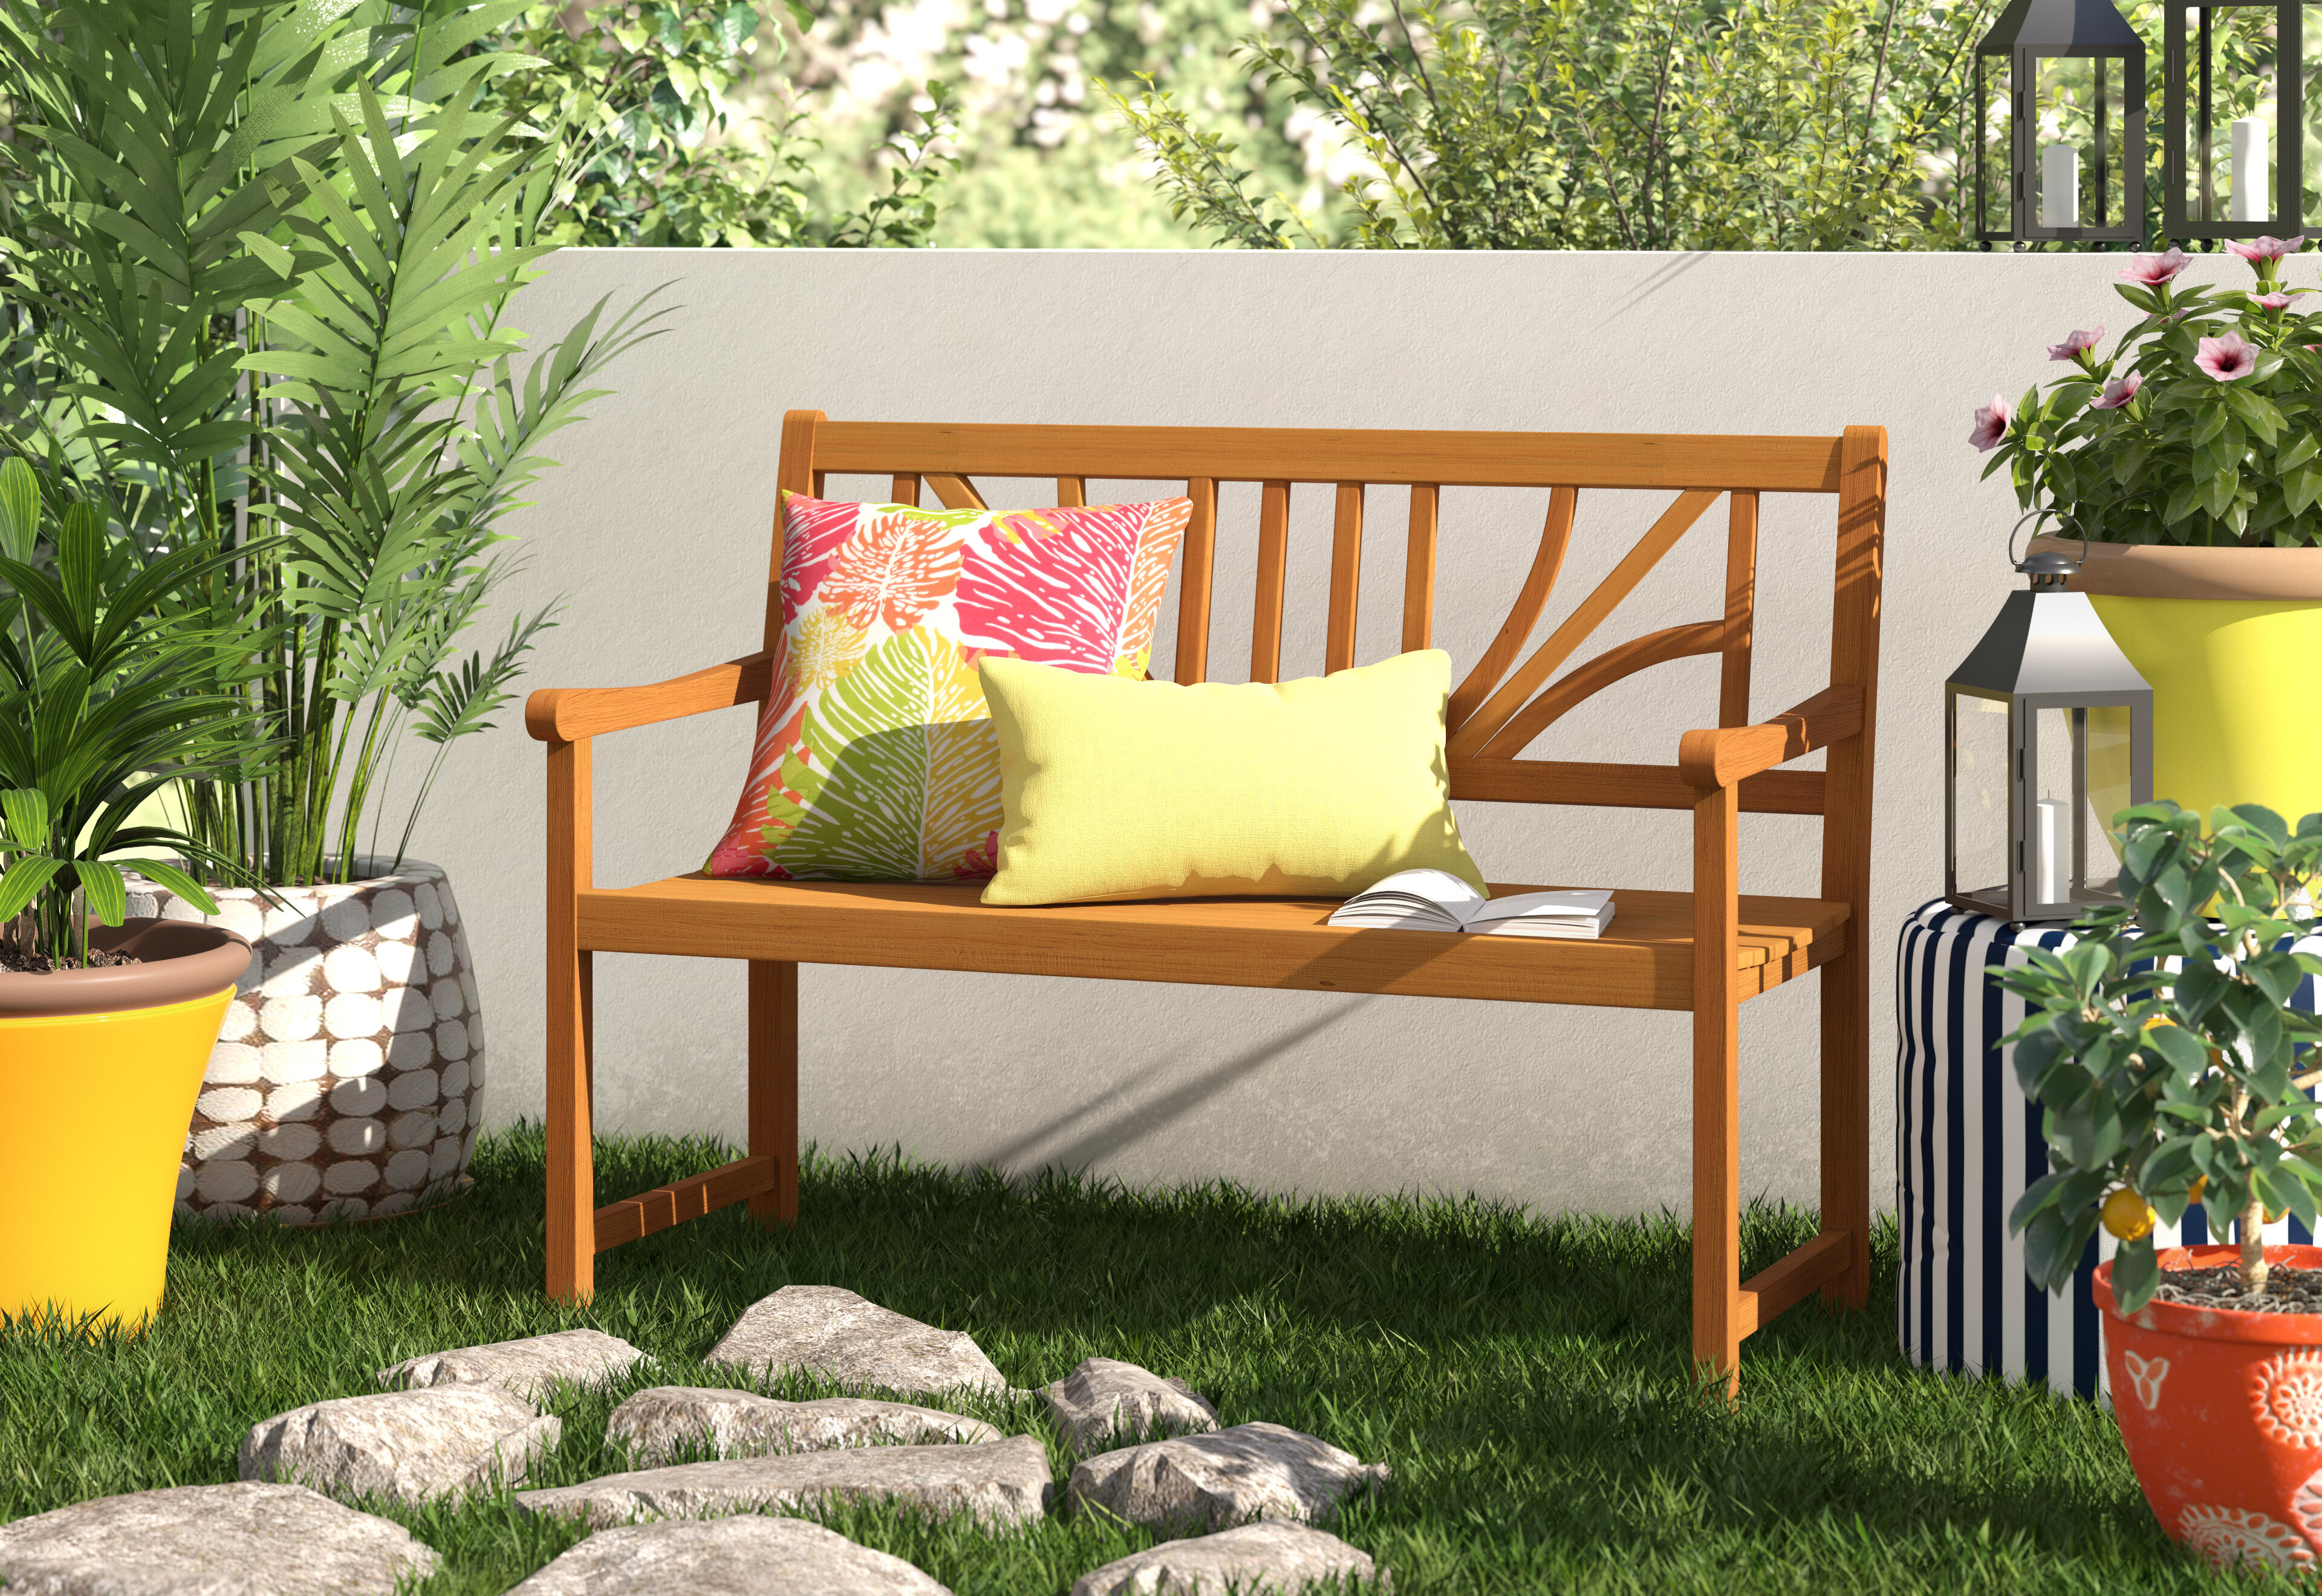 Fabulous Dauberville Wooden Bench Caraccident5 Cool Chair Designs And Ideas Caraccident5Info